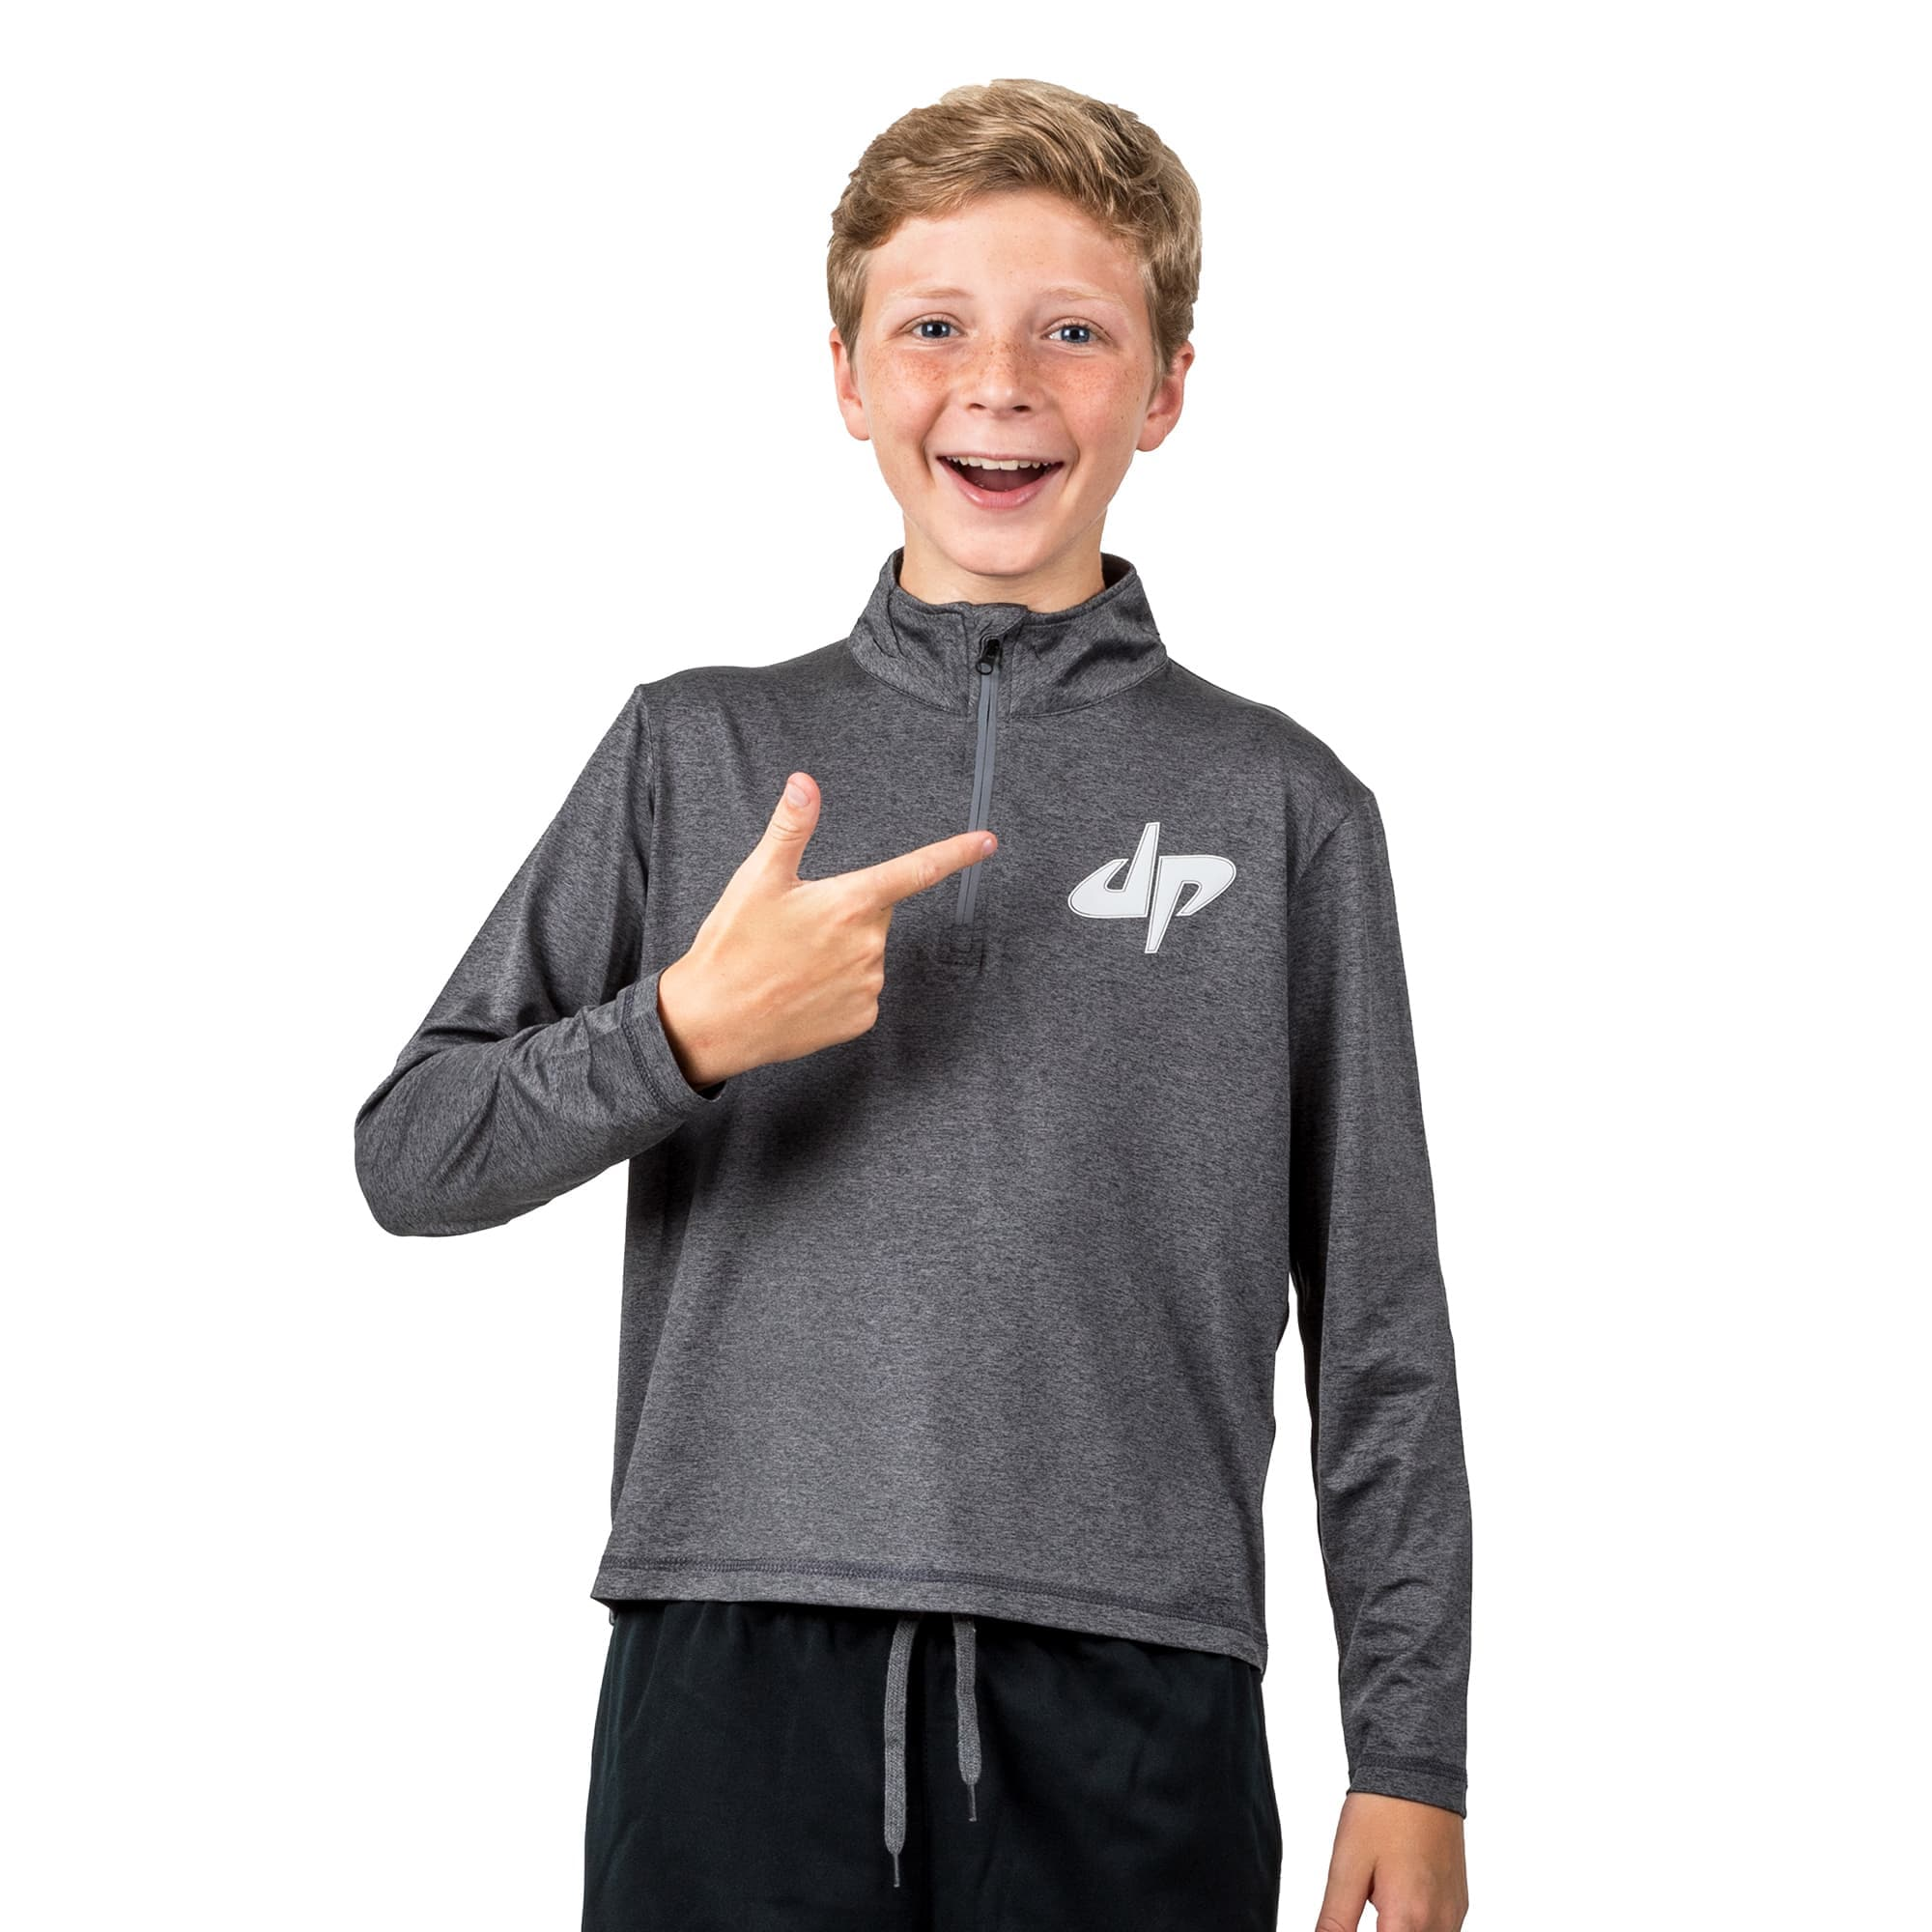 Youth Rivalry Half Zip Pullover Top II